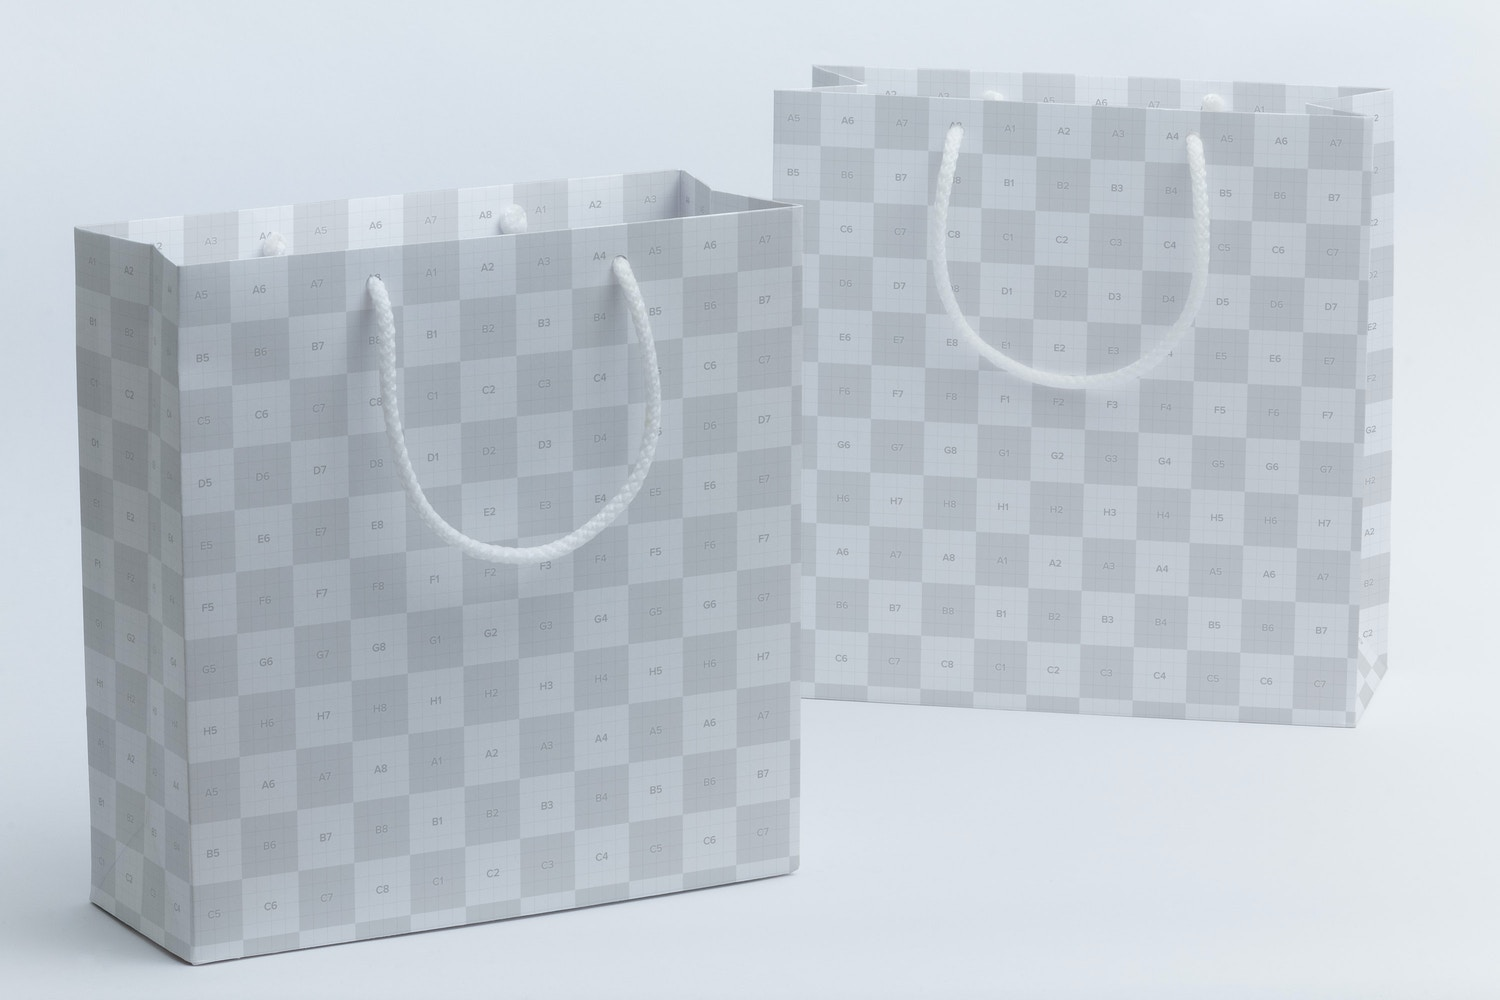 Shopping Bag Mockup 07 by Ktyellow  on Original Mockups